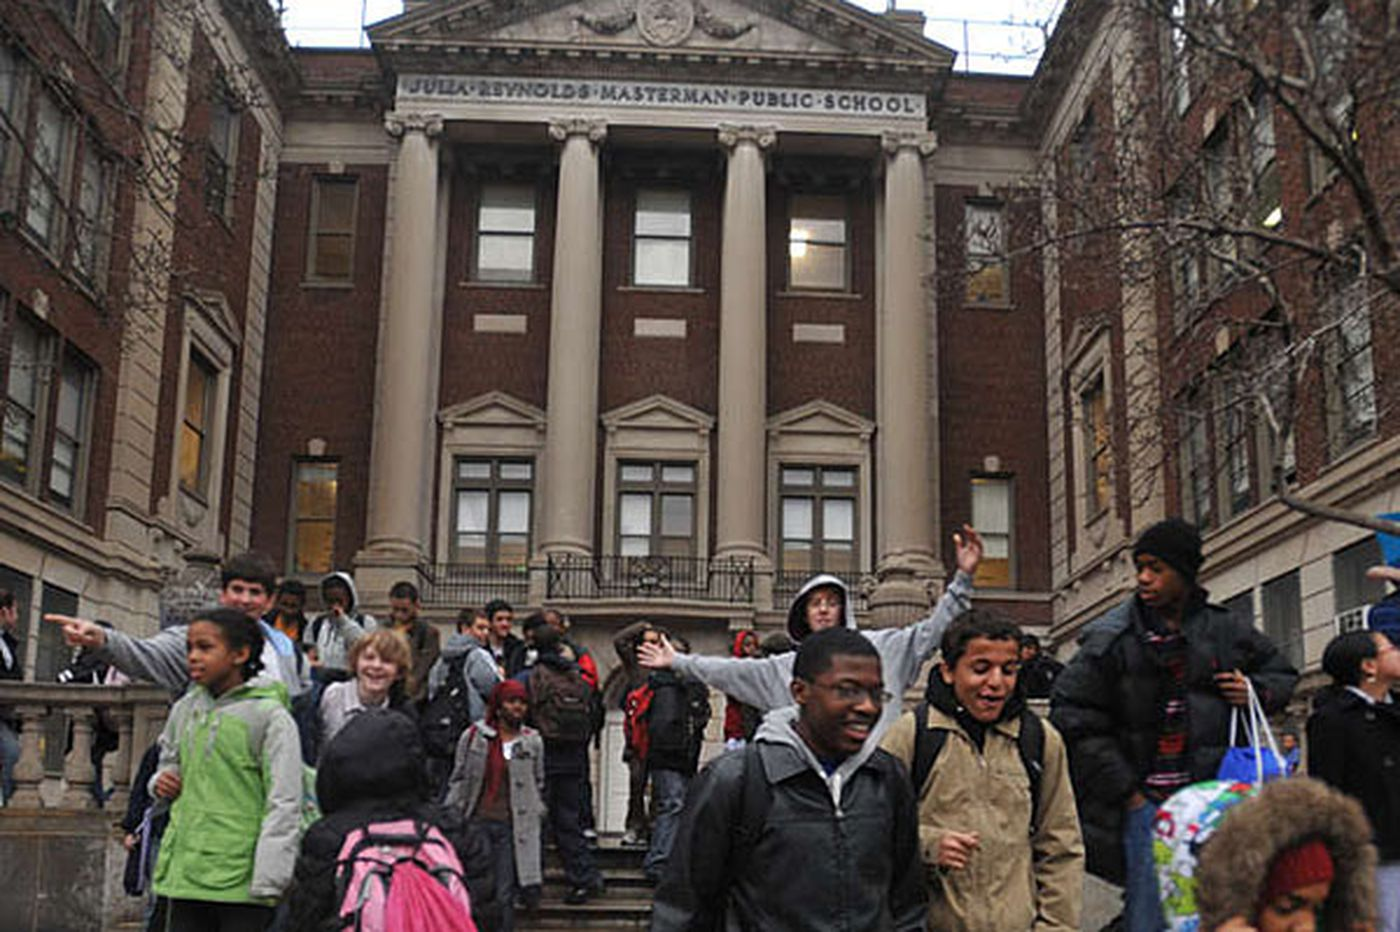 Where are the best high schools in the country? Not in Pa. or South Jersey, according to U.S. News ranking.